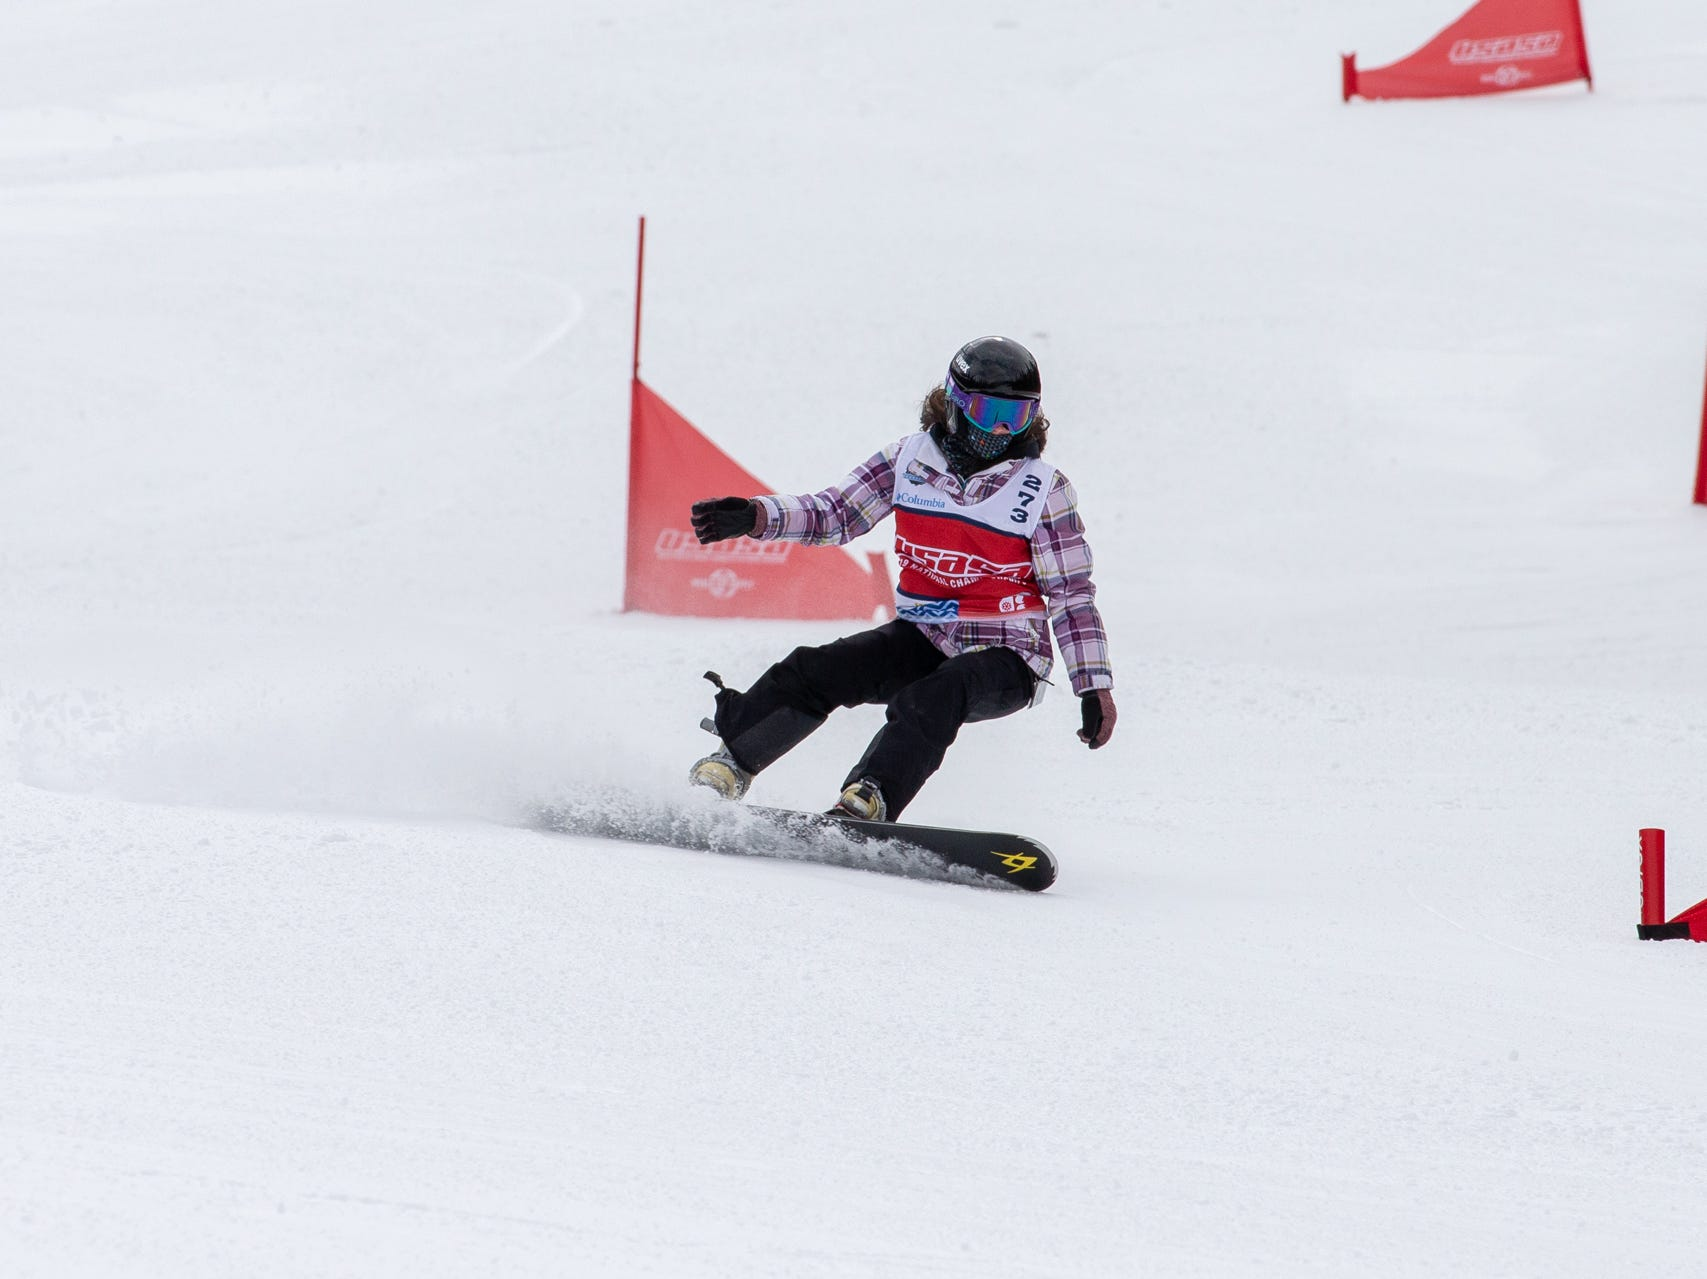 Kelsey Hunter of Shasta / North State snowboarders compete at the 2019 USASA National Championships at Copper Mountain in Colorado.